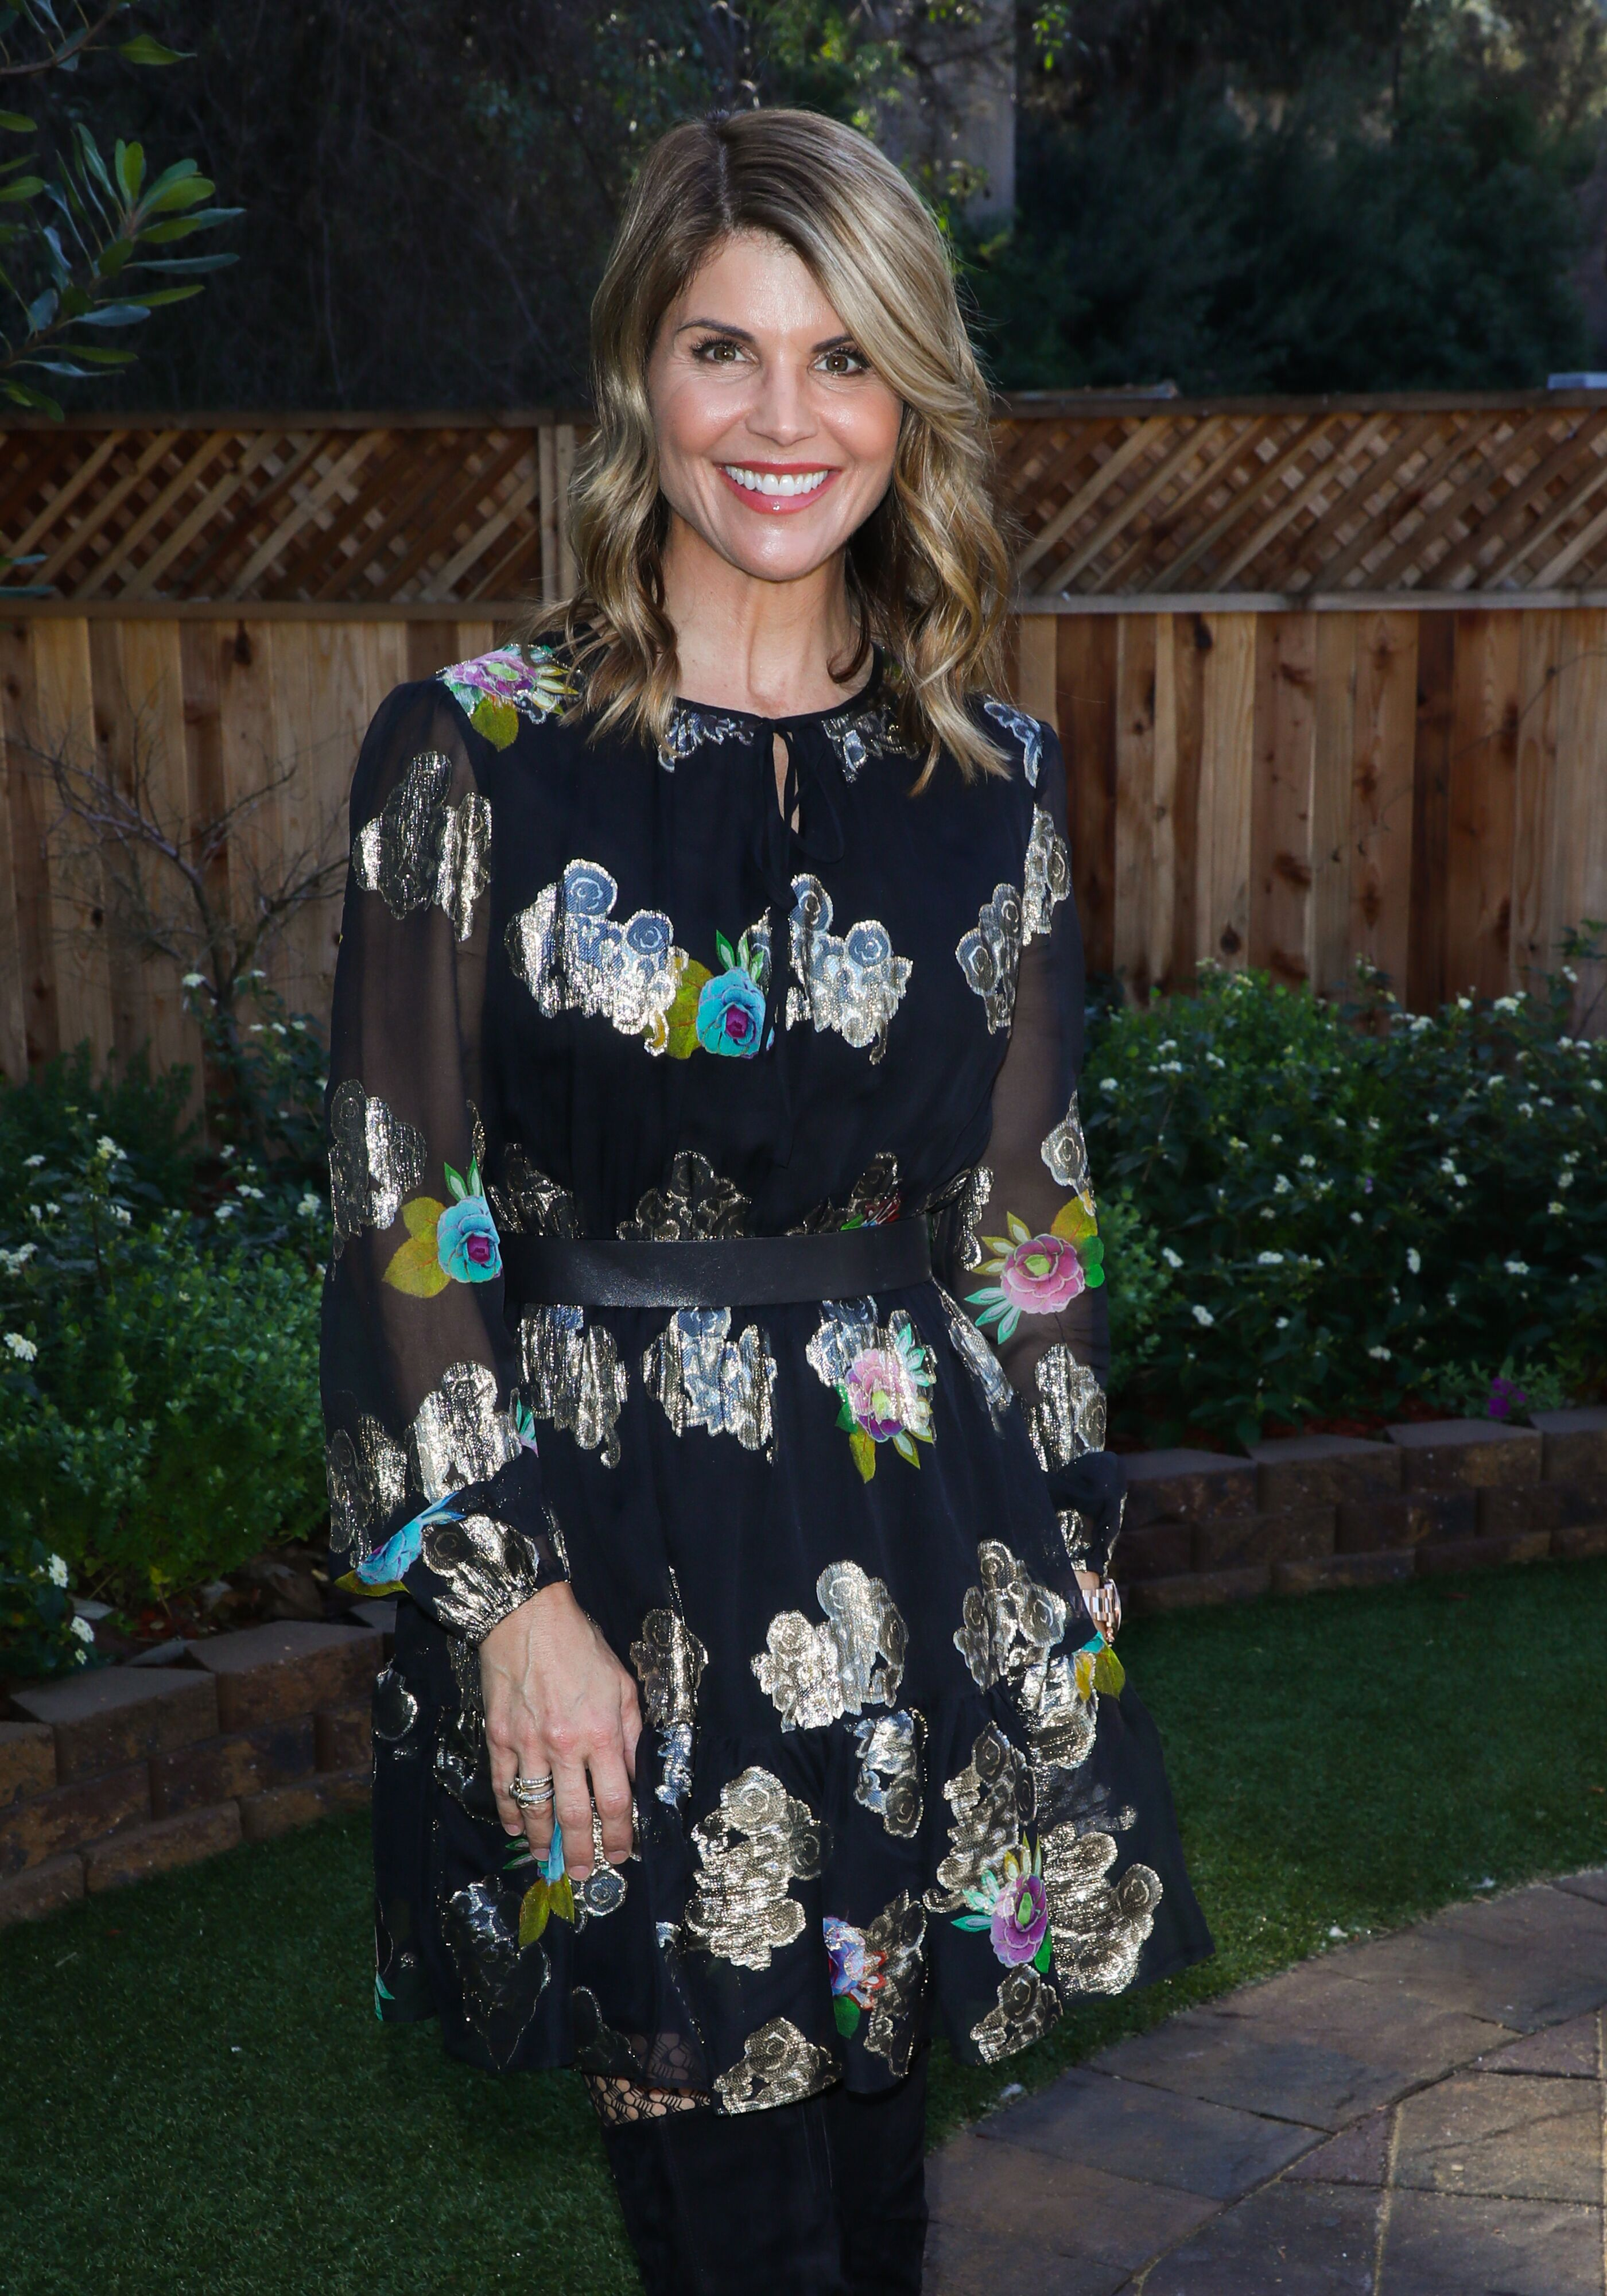 """Lori Loughlin visits Hallmark's """"Home & Family"""" at Universal Studios Hollywood on December 19, 2018 in Universal City, California.  